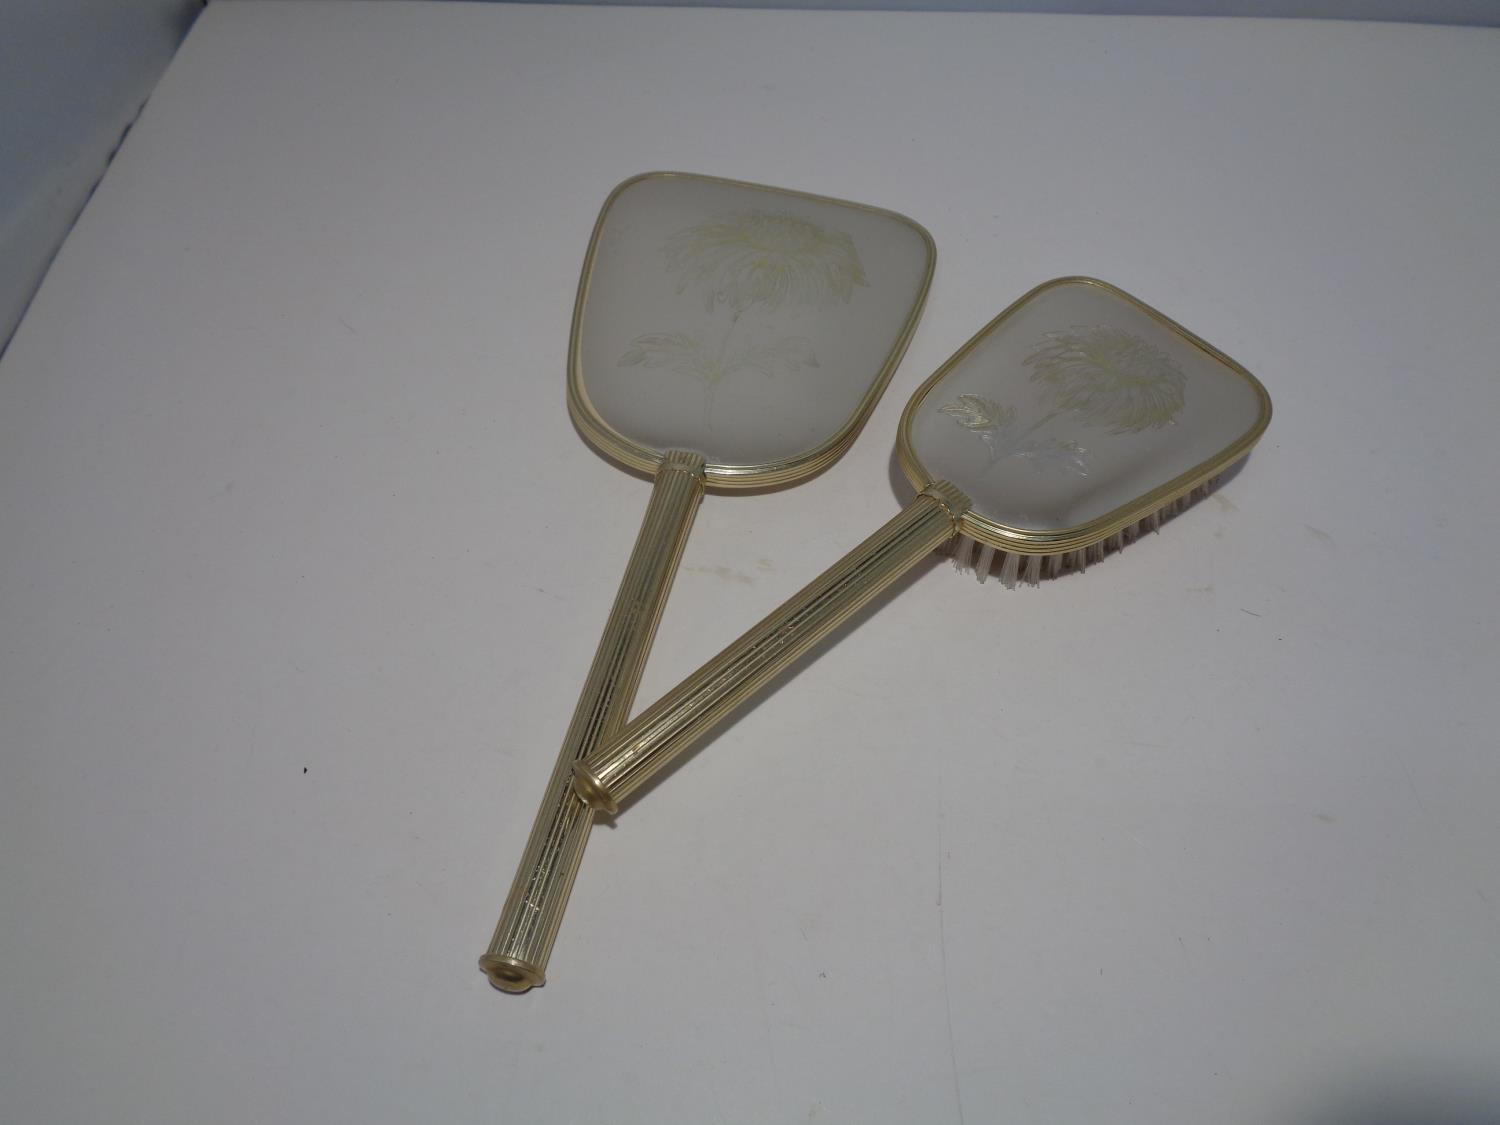 A DRESSING TABLE SET TO INCLUDE A HAND MIRROR AND MATCHING BRUSH - Image 2 of 6